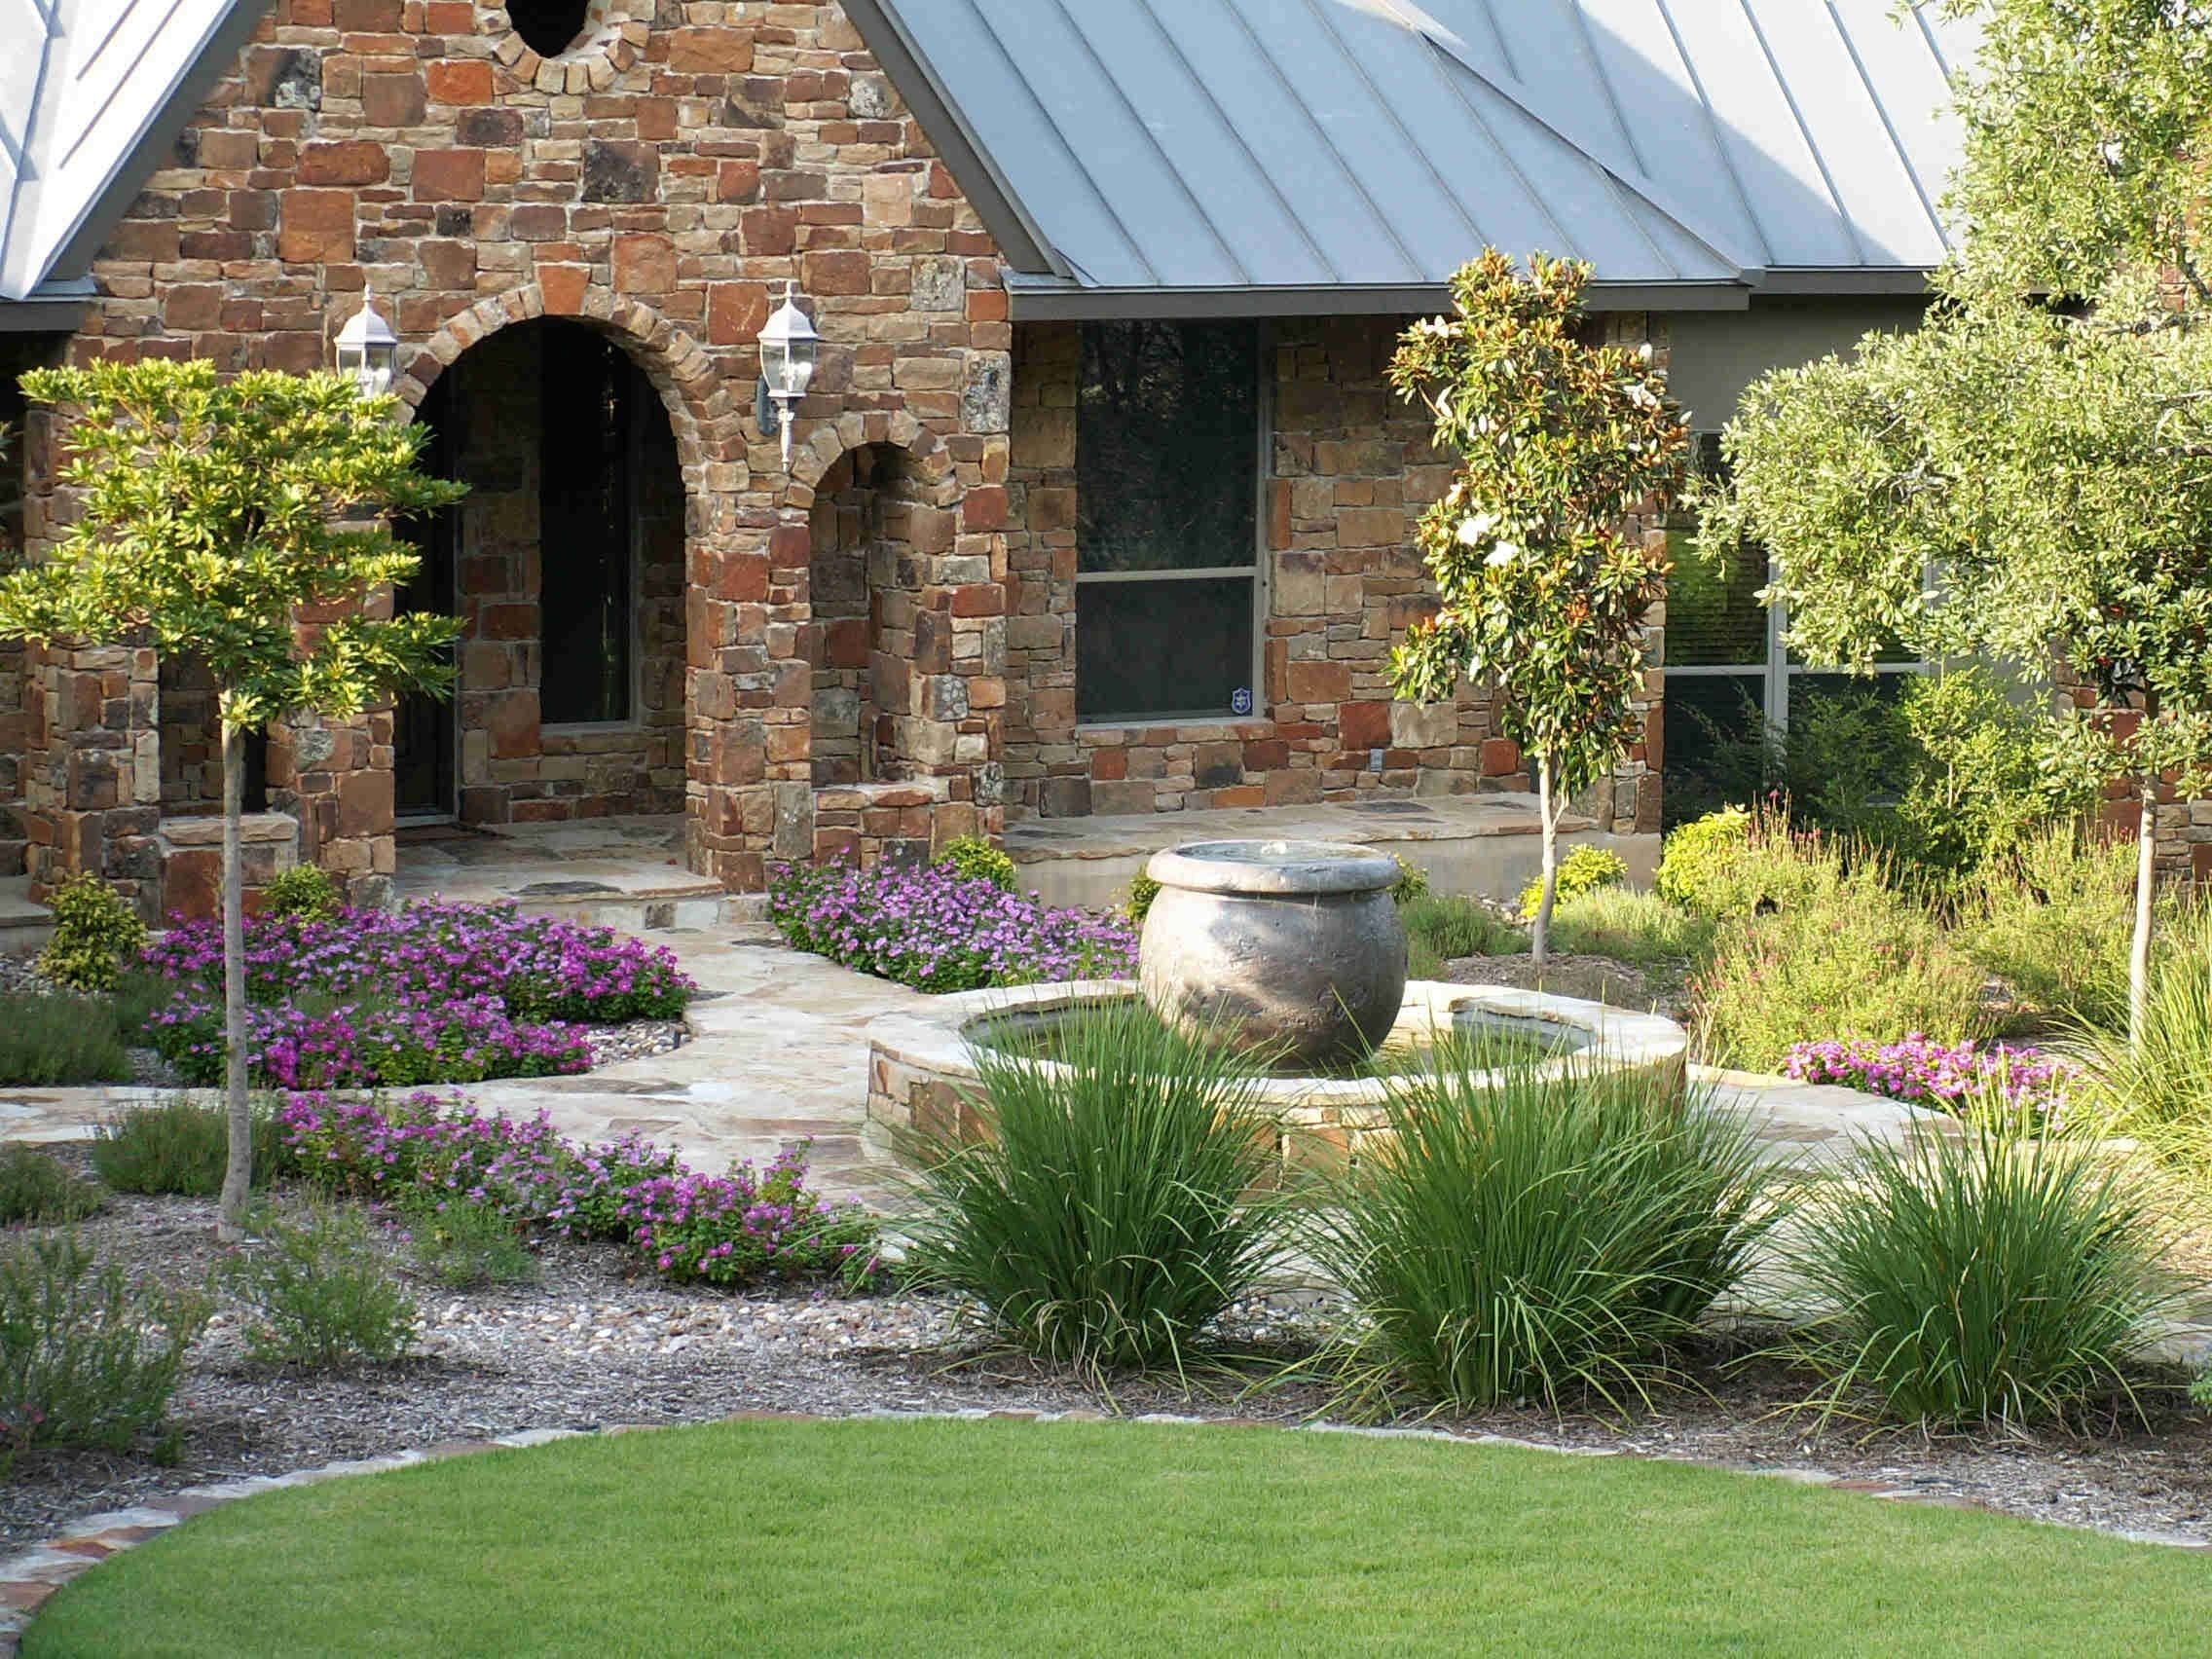 charming midwest front yard landscaping ideas images on front yard landscaping ideas id=58680